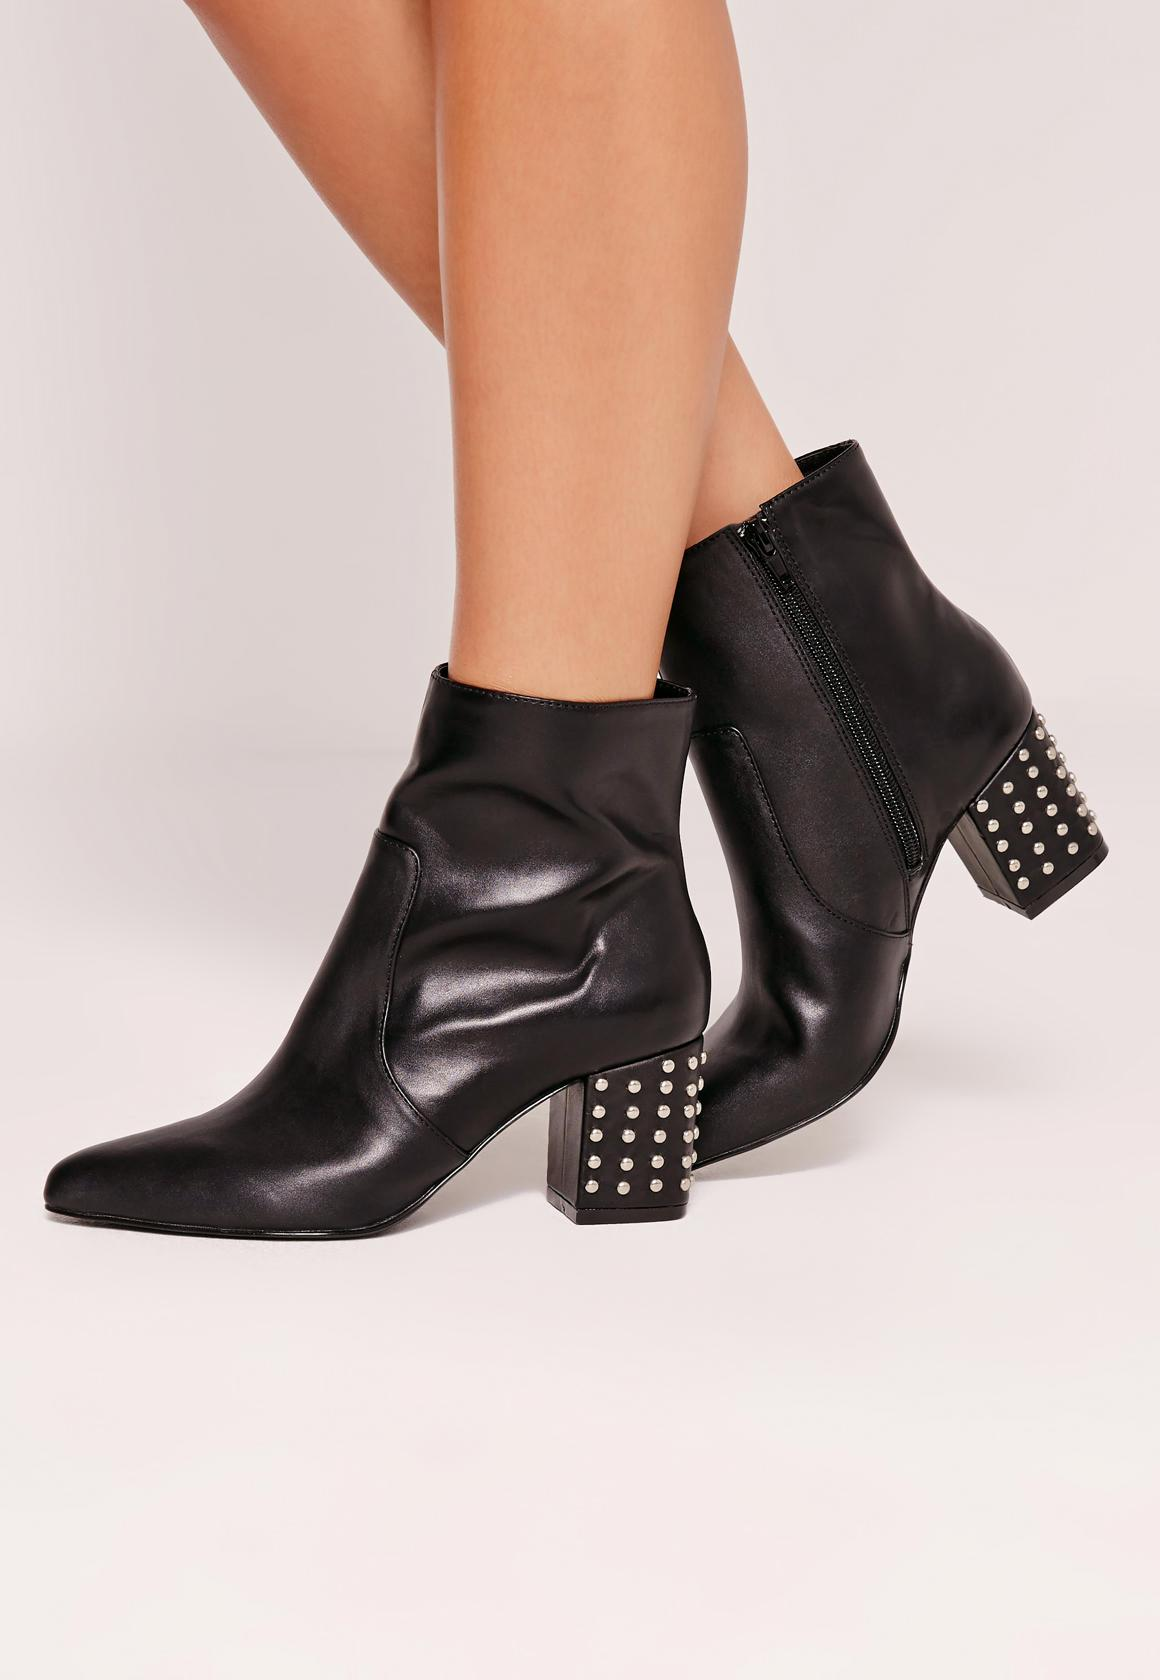 Missguided Studded Heel Ankle Boot Black at £16  813d7b07aa09